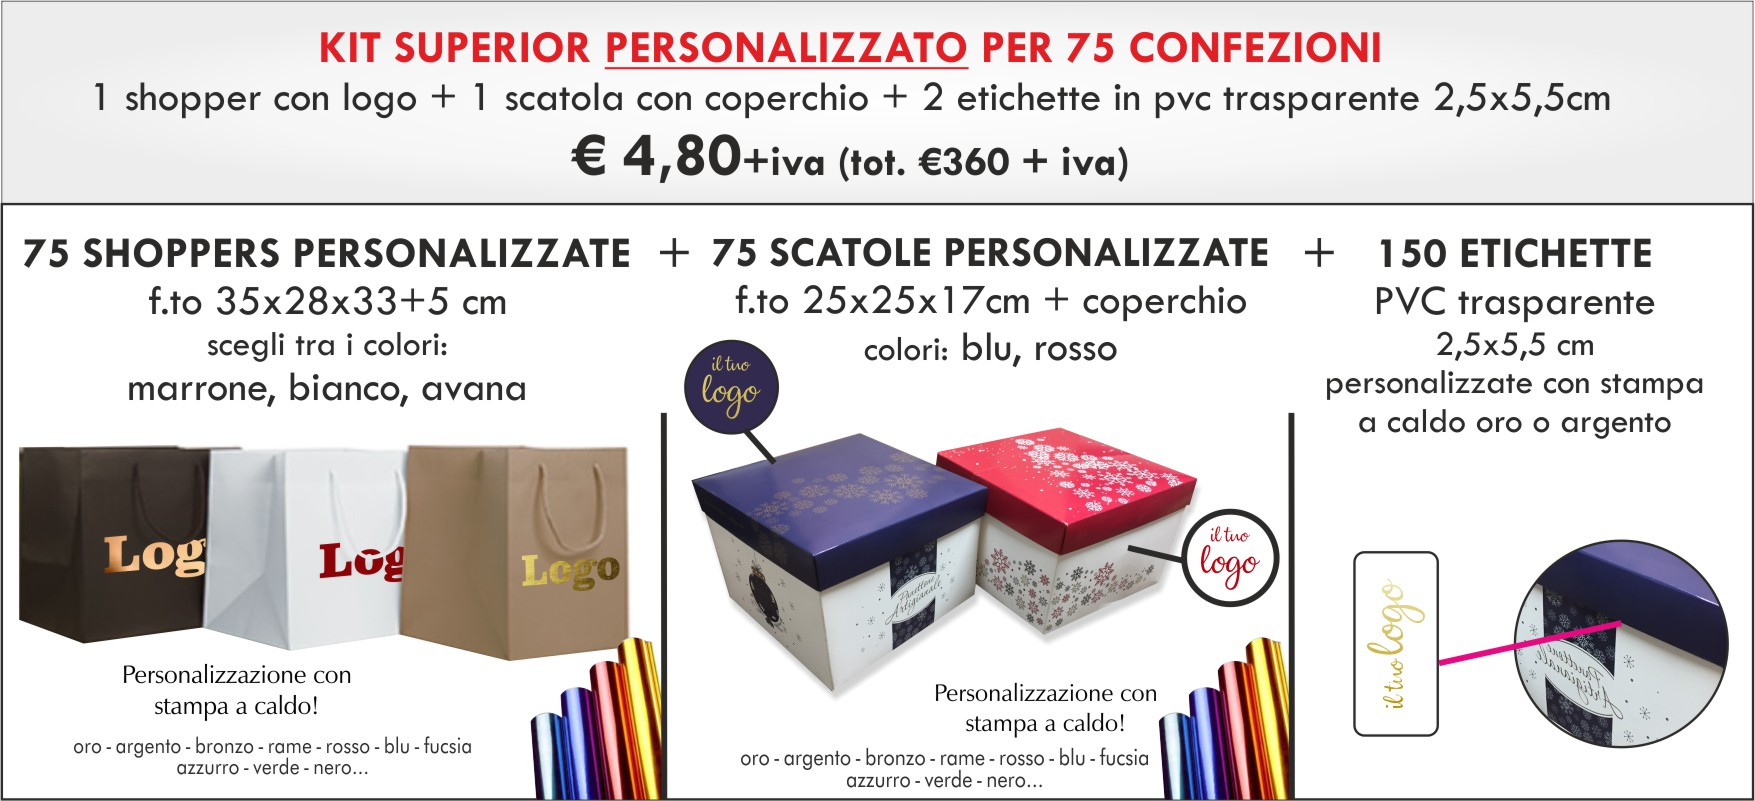 scatole porta panettone,packaging panettone,confezione panettone,scatole panettone personalizzate,packaging panettone personalizzato,confezione panettone personalizzato,scatole panettone stampate,packaging panettone stampate,confezione panettone stampato, porta panettone personalizzato,kit natale,kit scatola e busta